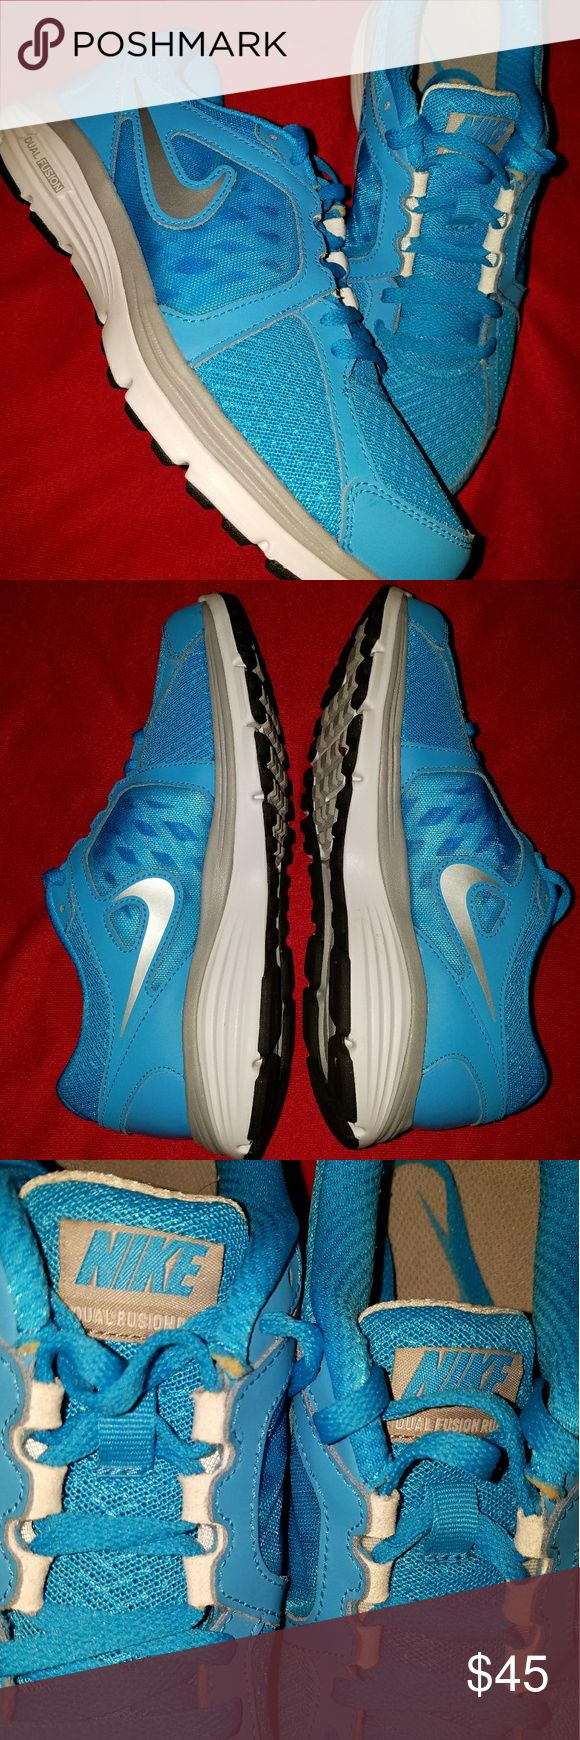 Nike Dual Fusion Run Sneakers 8.5 Gently Worn Nike Dual Fusion Run Sneakers  Size 8.5 Women's  Still has tons of life in them. Wore them to fitness class a few times Nike Shoes Sneakers